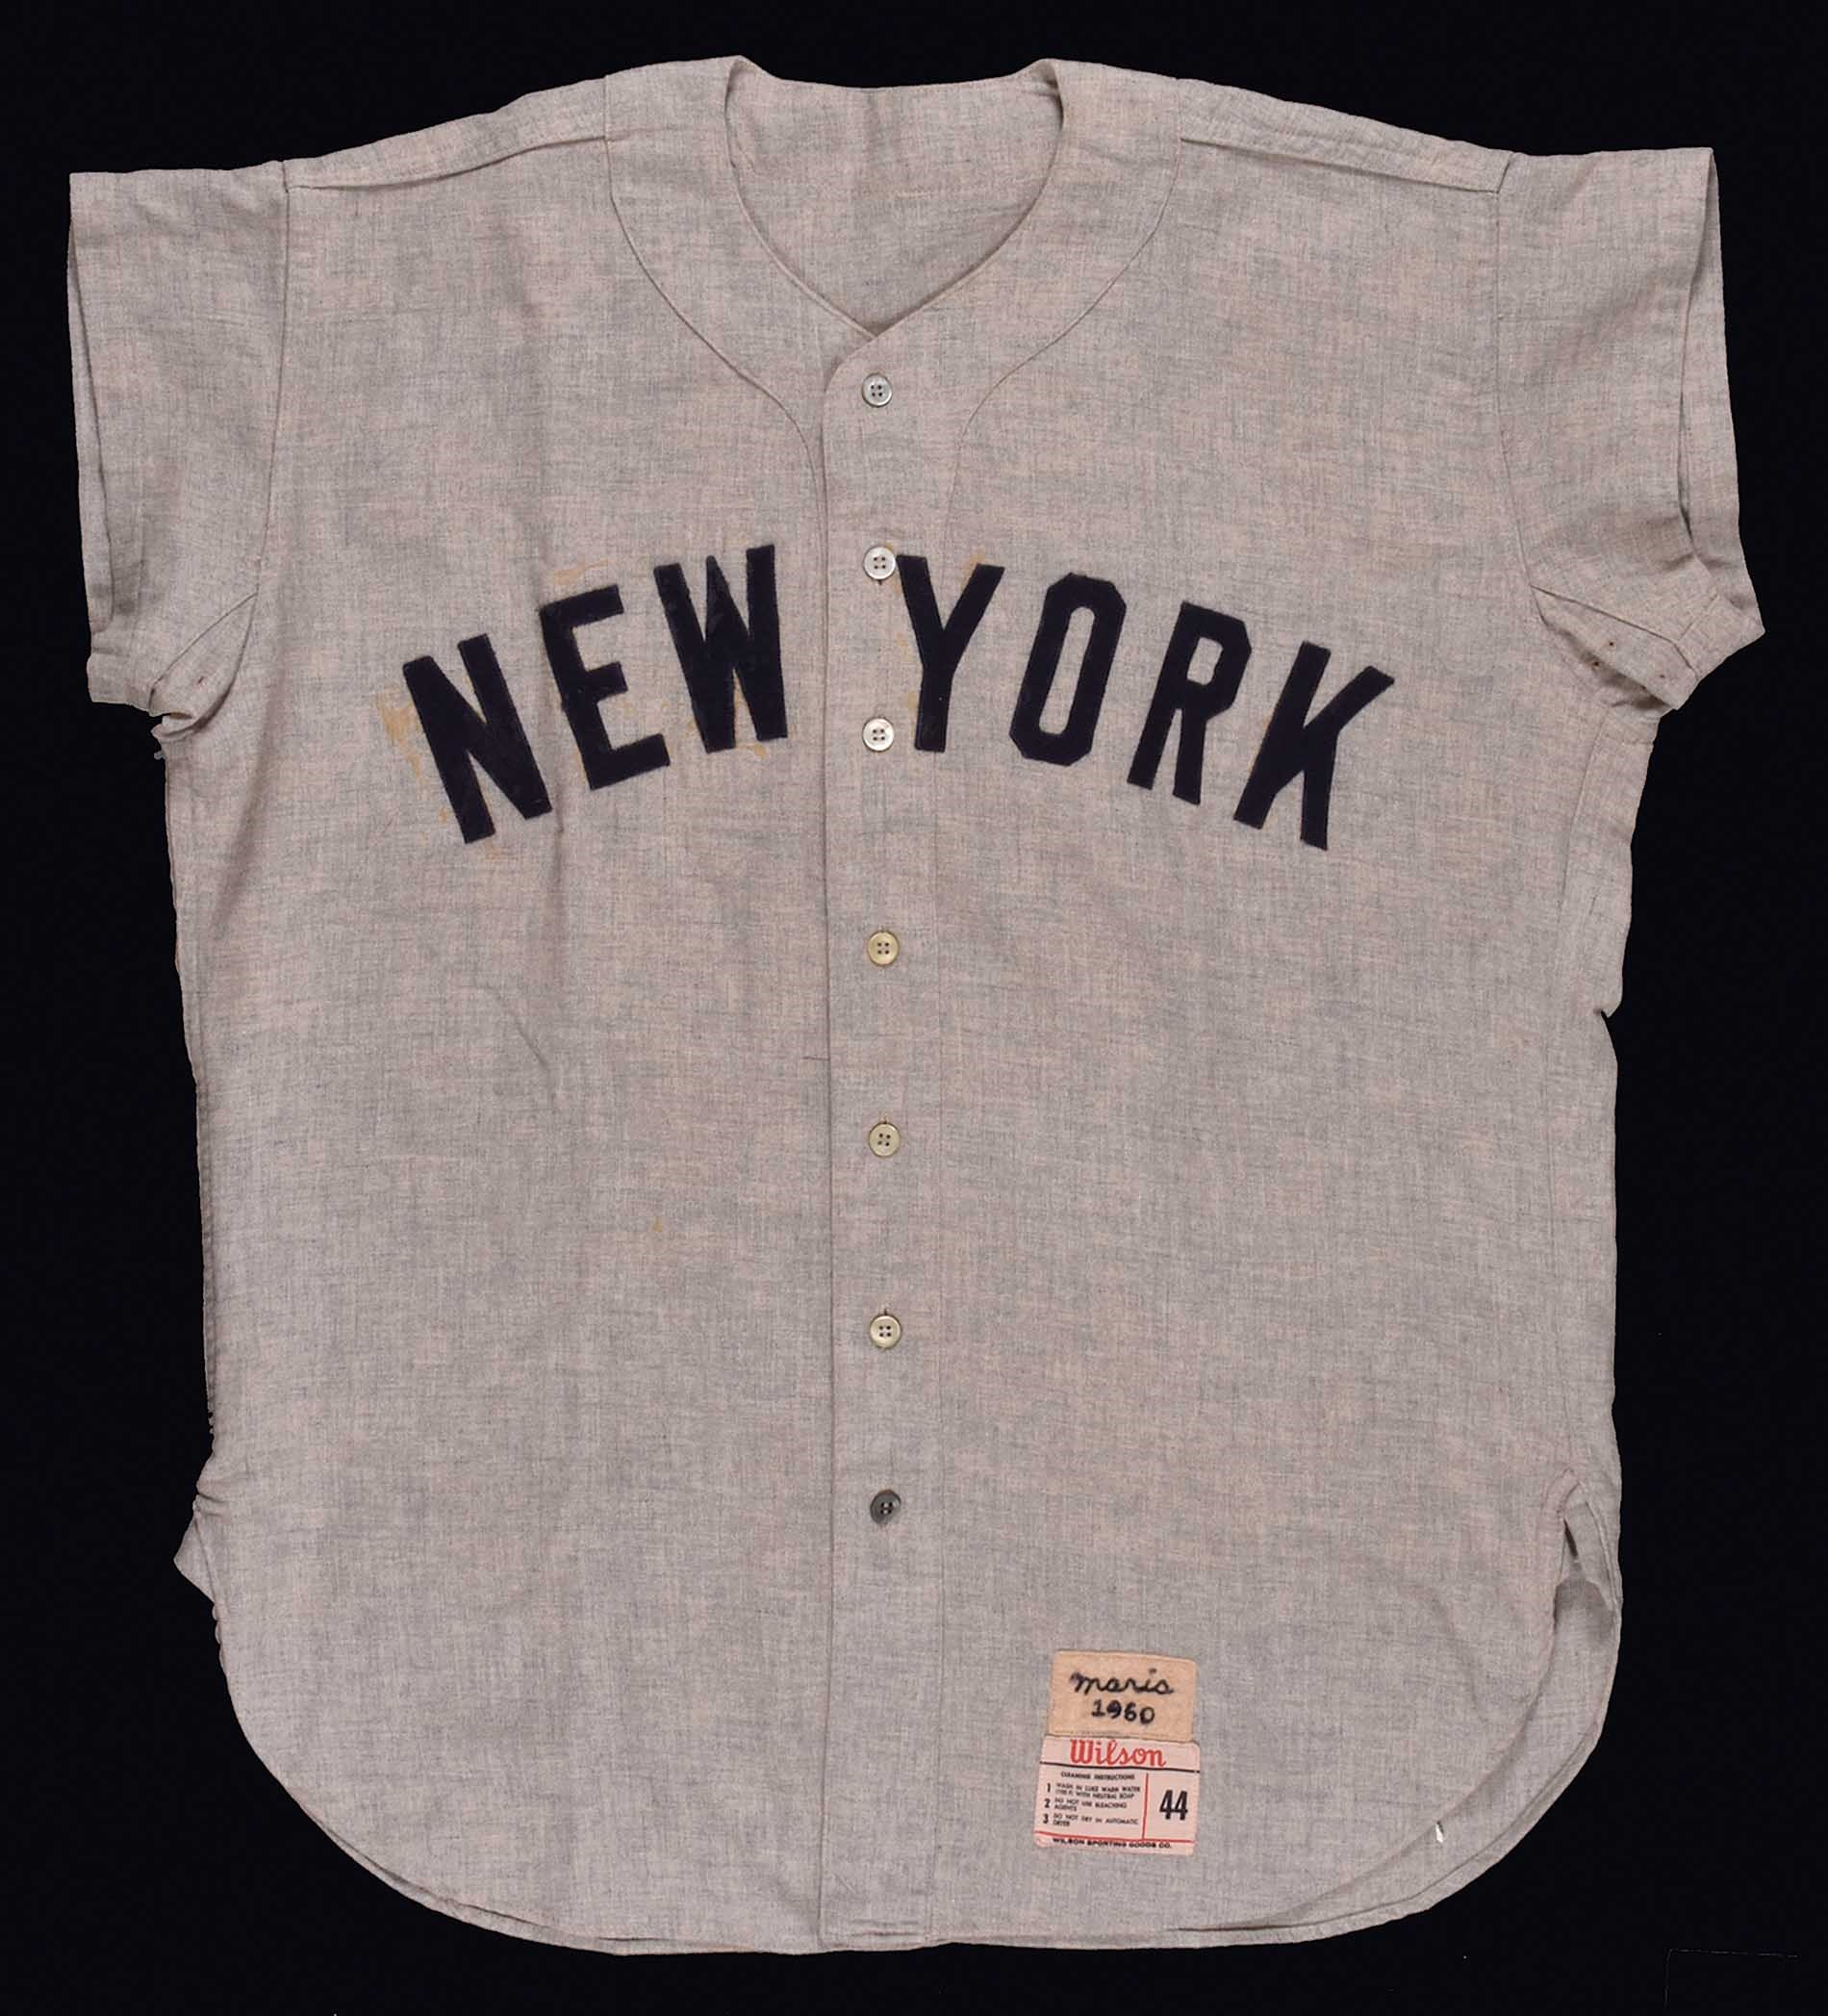 timeless design d5d3a 54821 1960 Roger Maris New York Yankees Game-Used Road Jersey